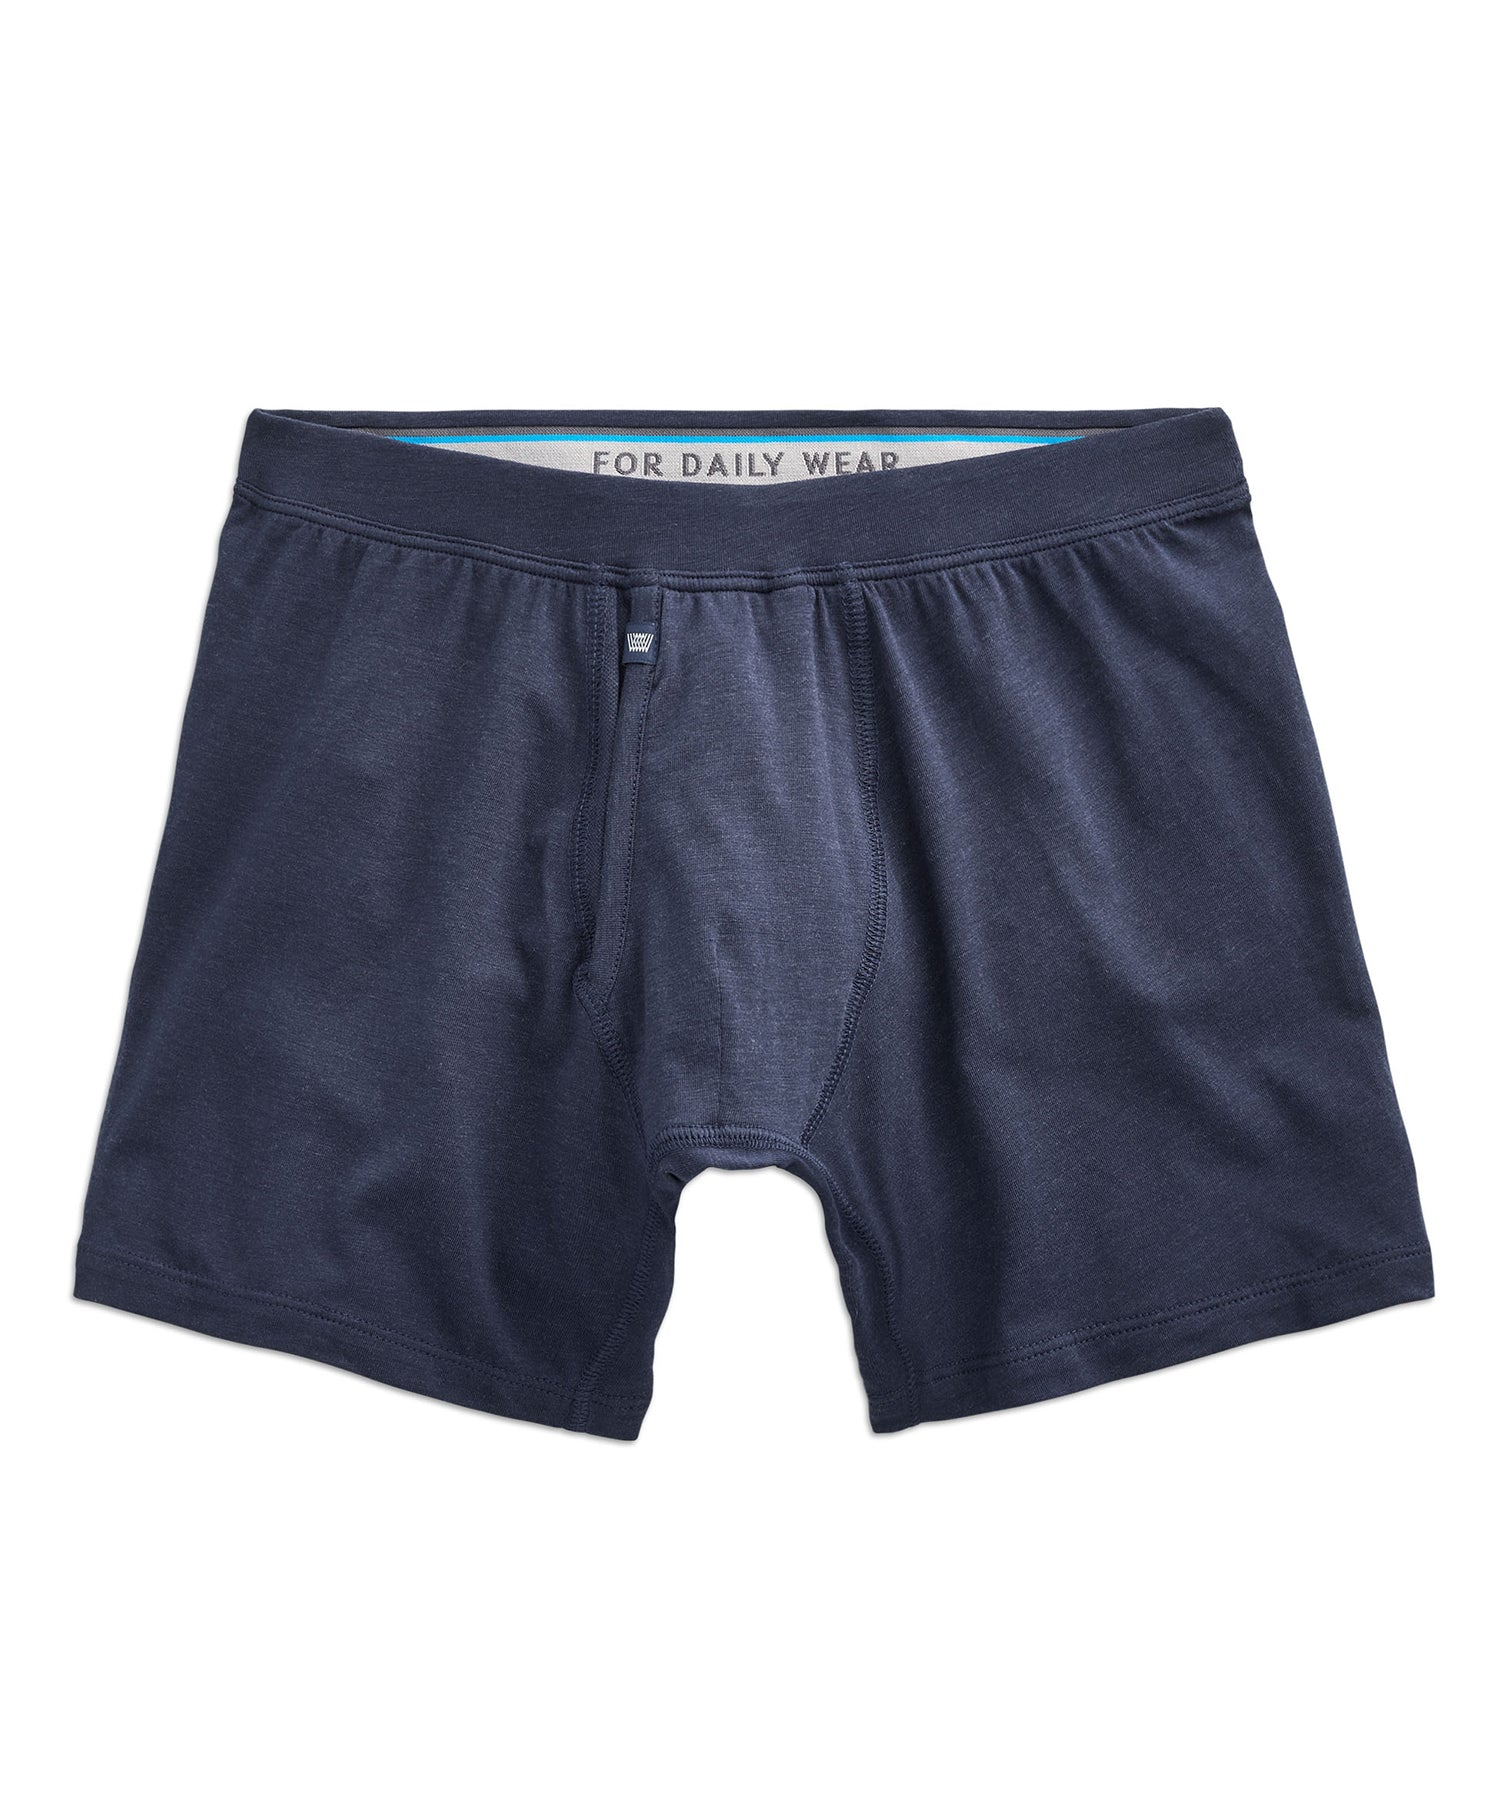 Mack Weldon Silver Boxer Brief in Navy